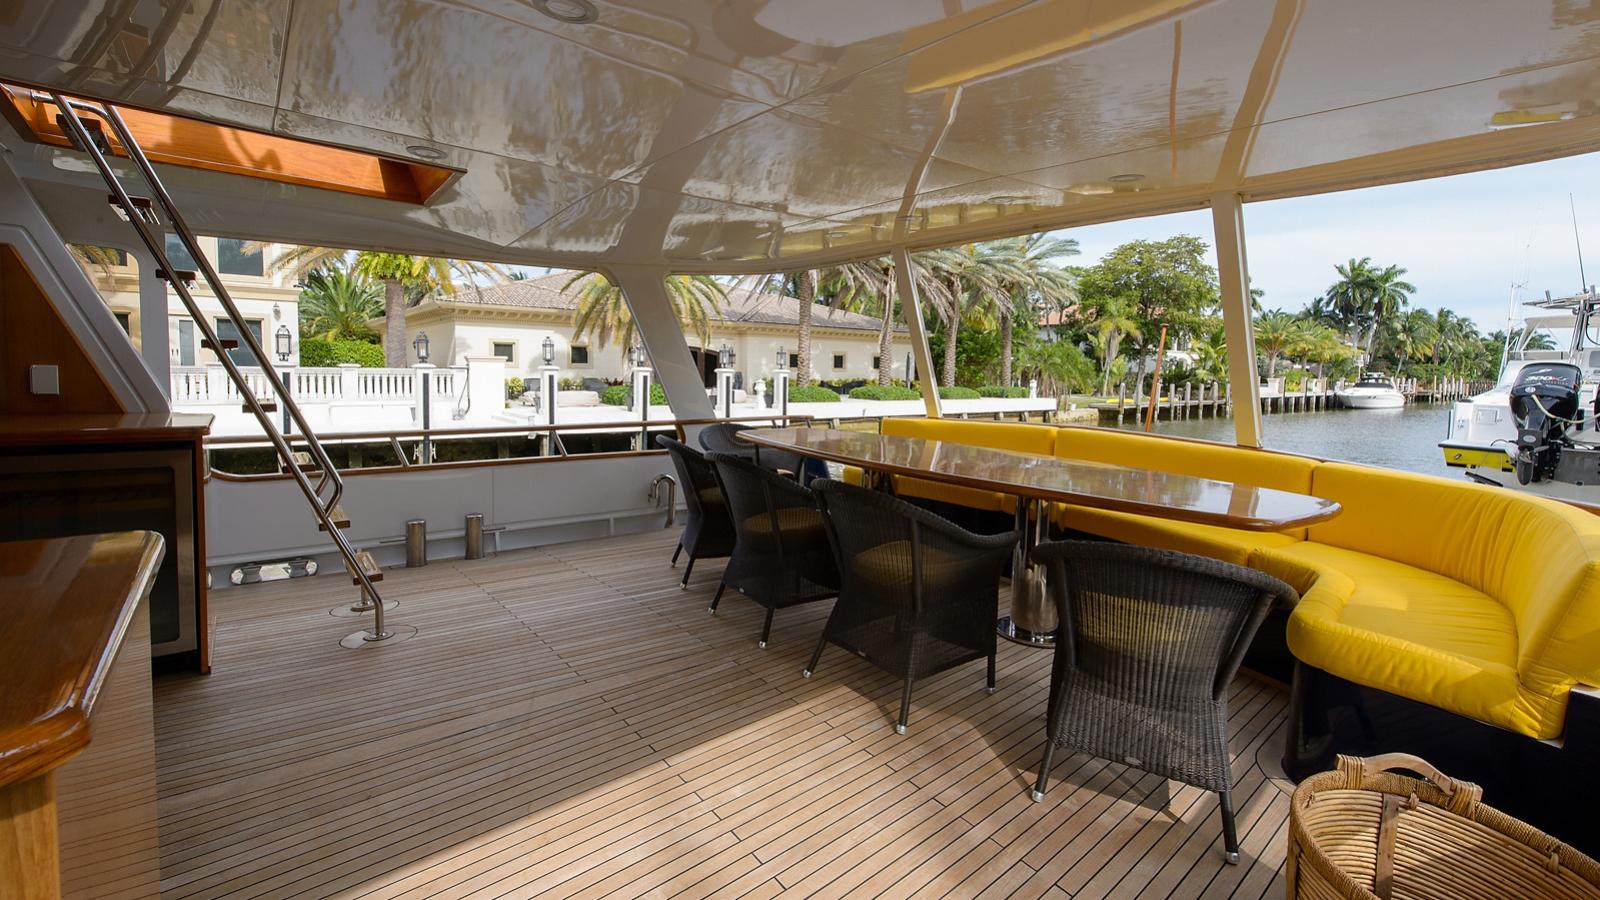 Halcyon Days motor yacht for sale aft